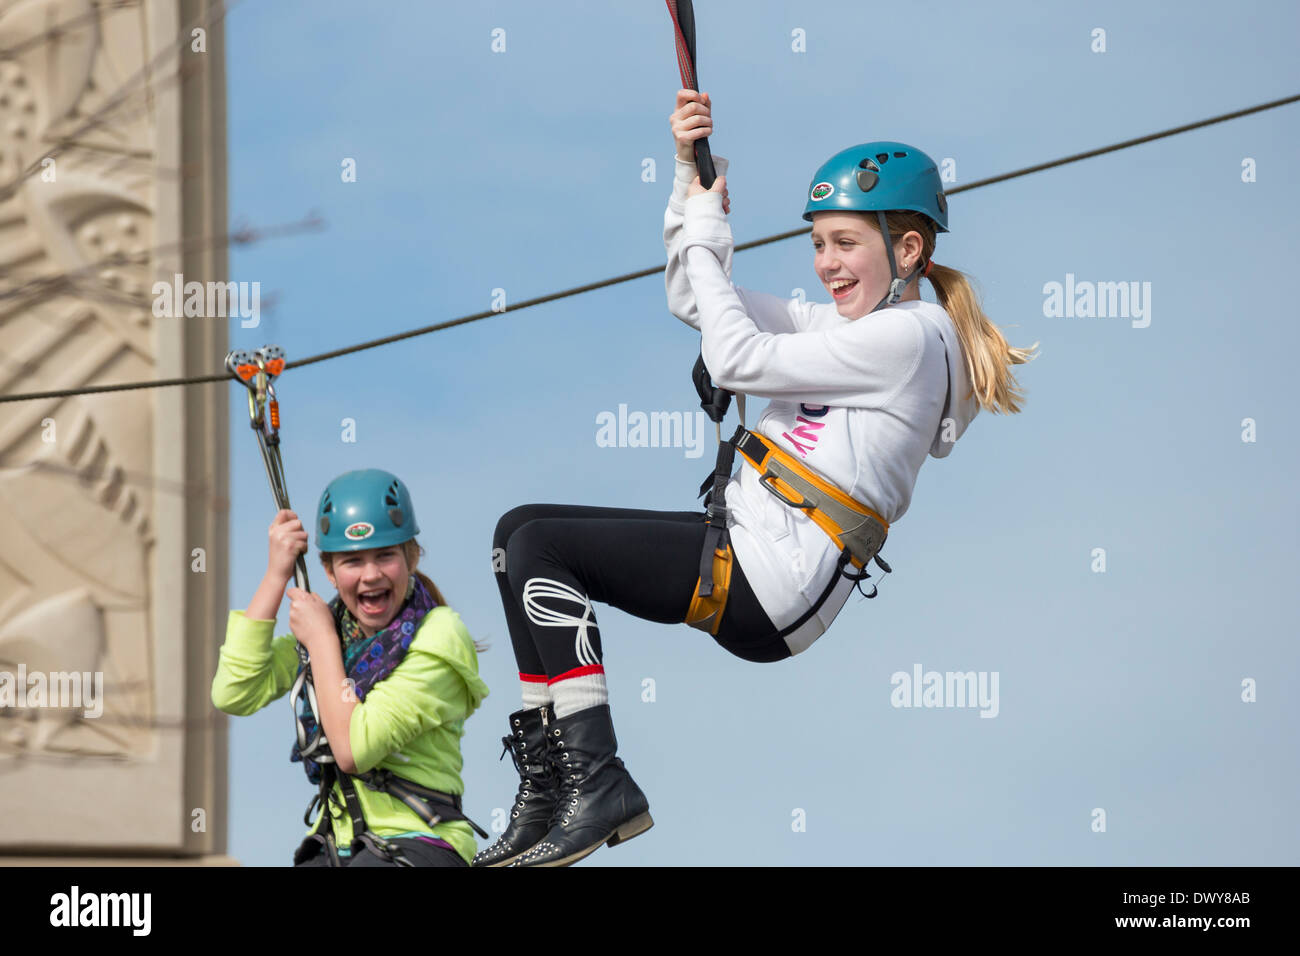 Two young girls on Zip line zipping over Uptown Mall shopping center at Spring Break-Victoria, British Columbia, Canada. - Stock Image